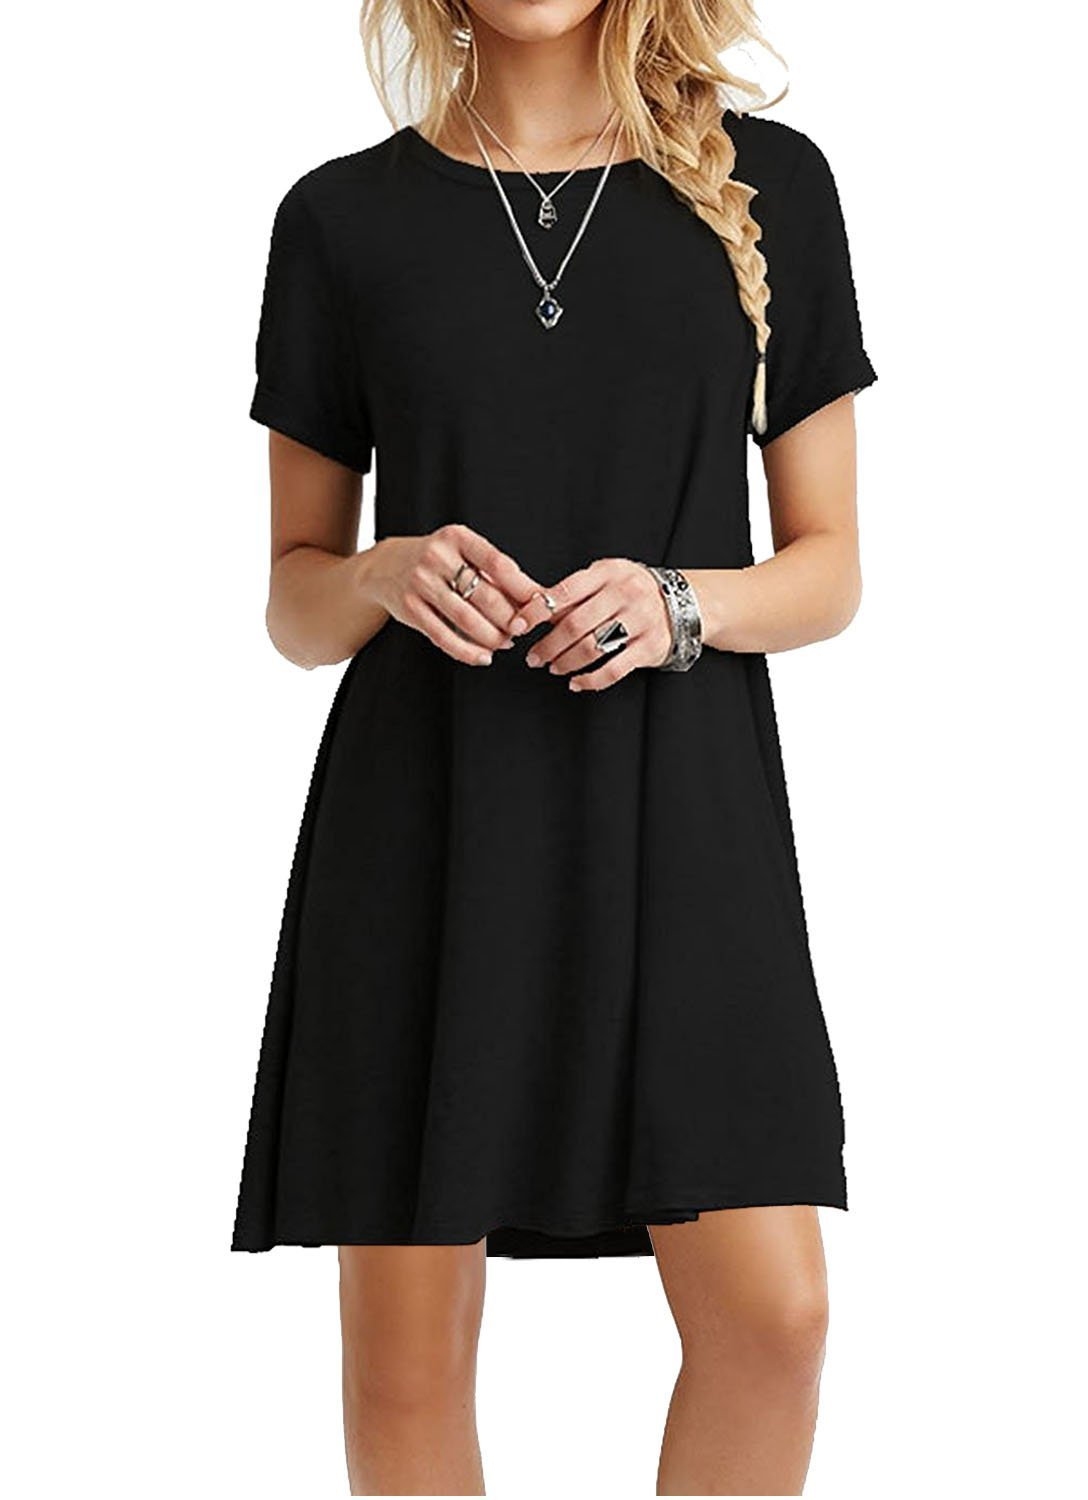 MOLERANI Women's Casual Plain Short Sleeve Simple T-Shirt Loose Dress, Black, Large